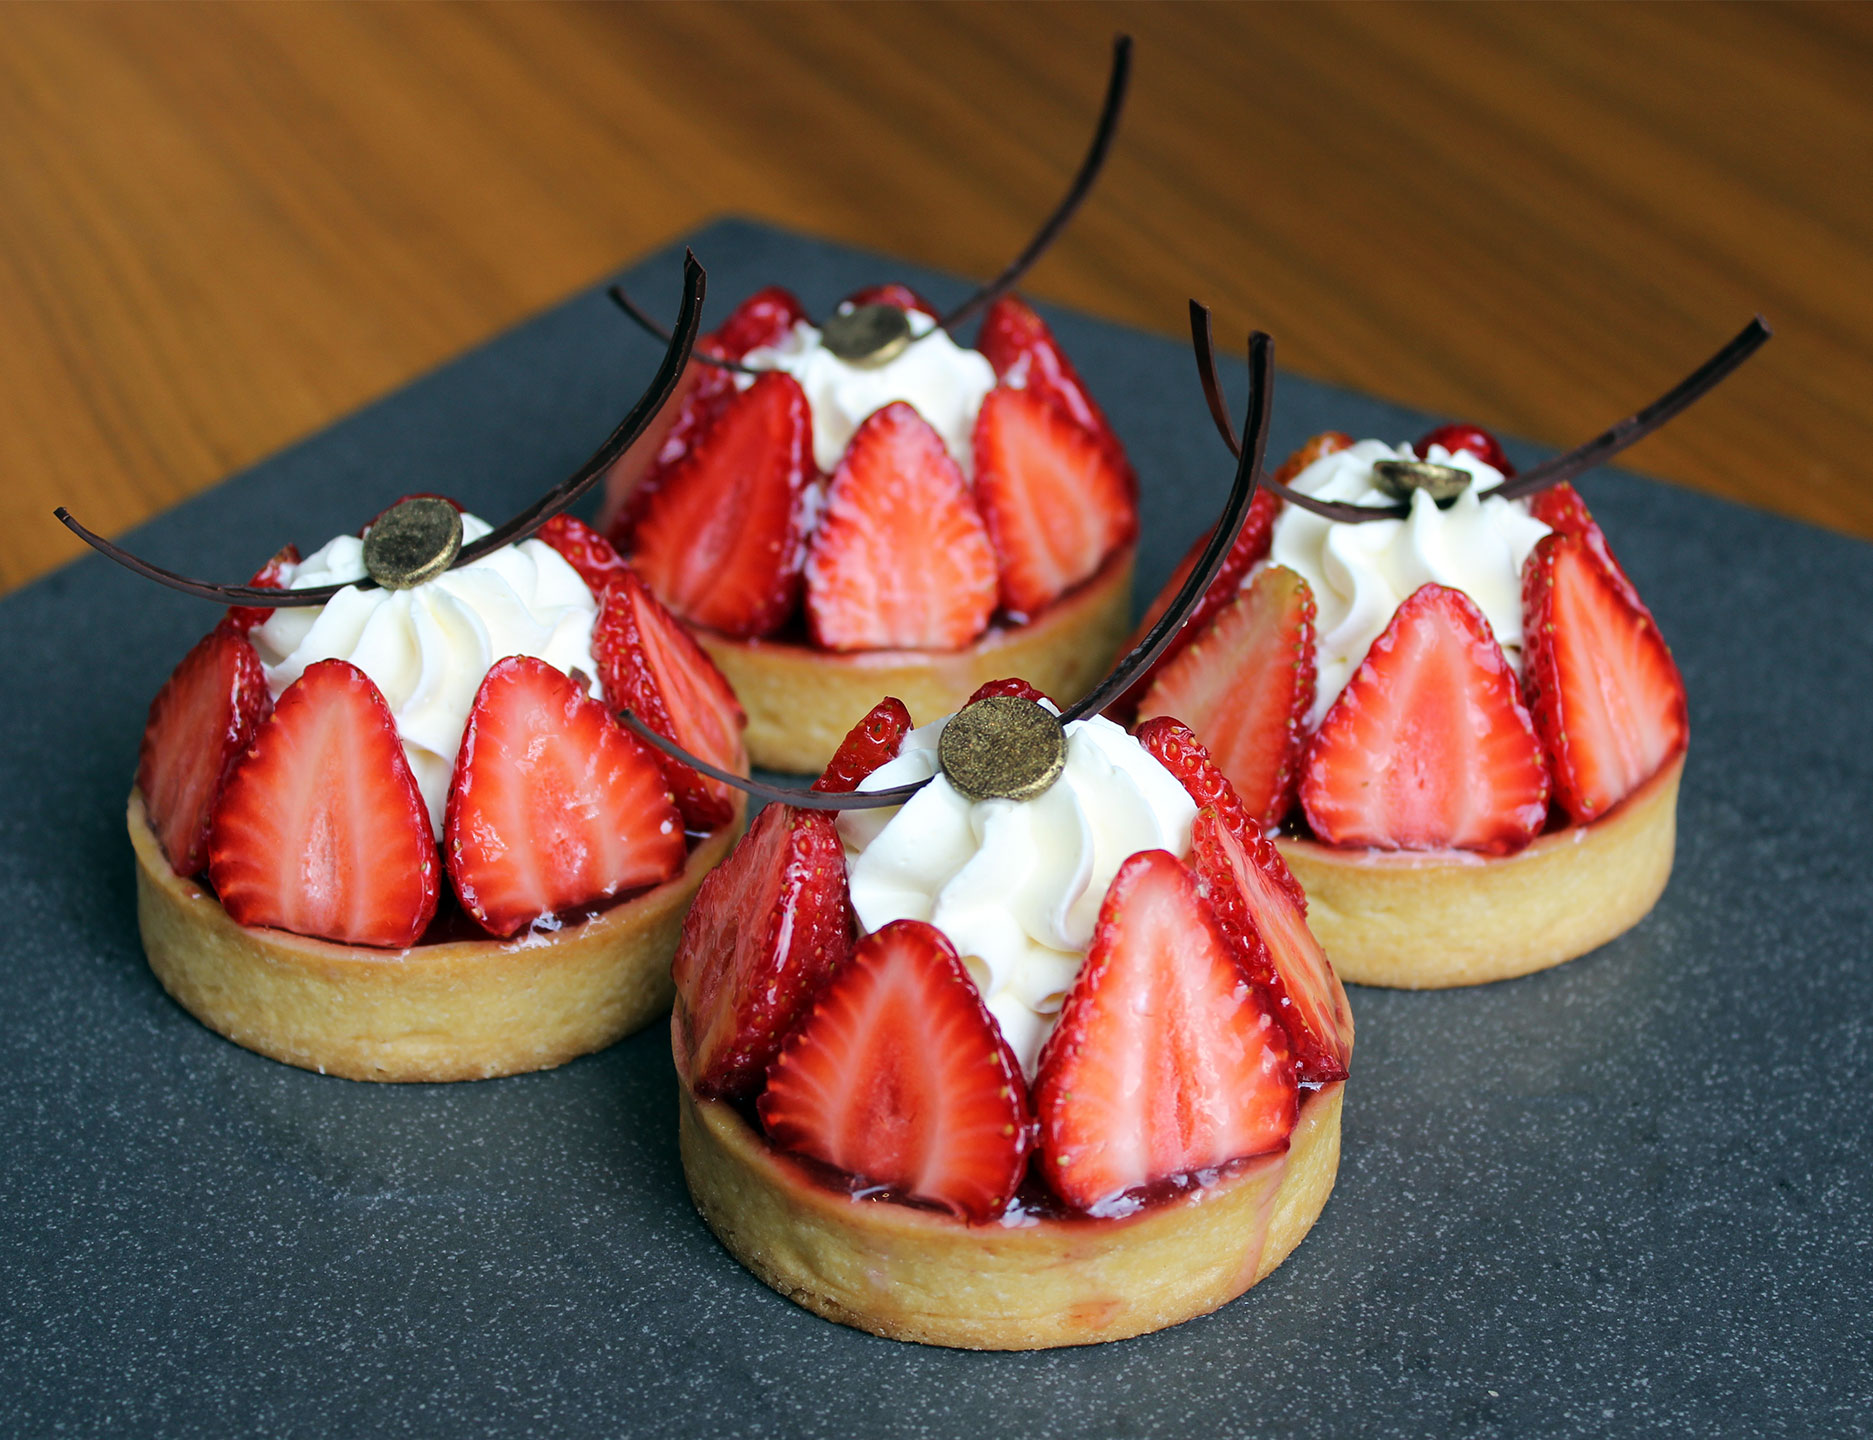 Strawberry Tarts for Valentine's Day, available at Marco Polo Ortigas' Cafe Pronto